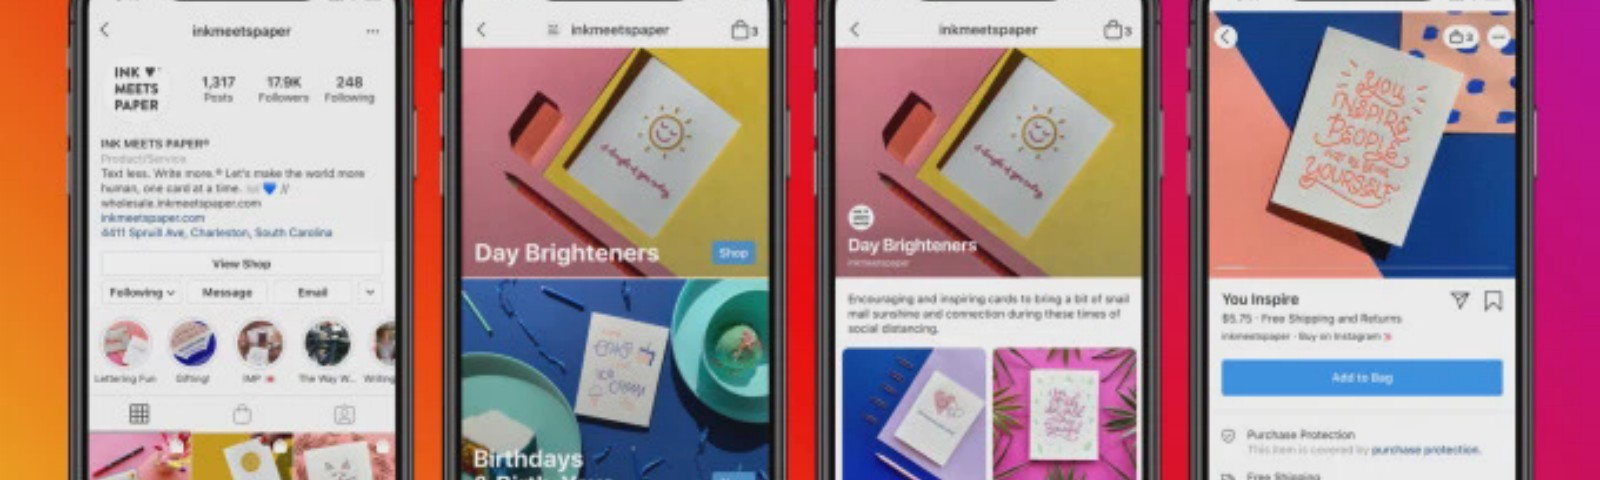 Phone screenshots Facebook and Instagram new feature: Shops